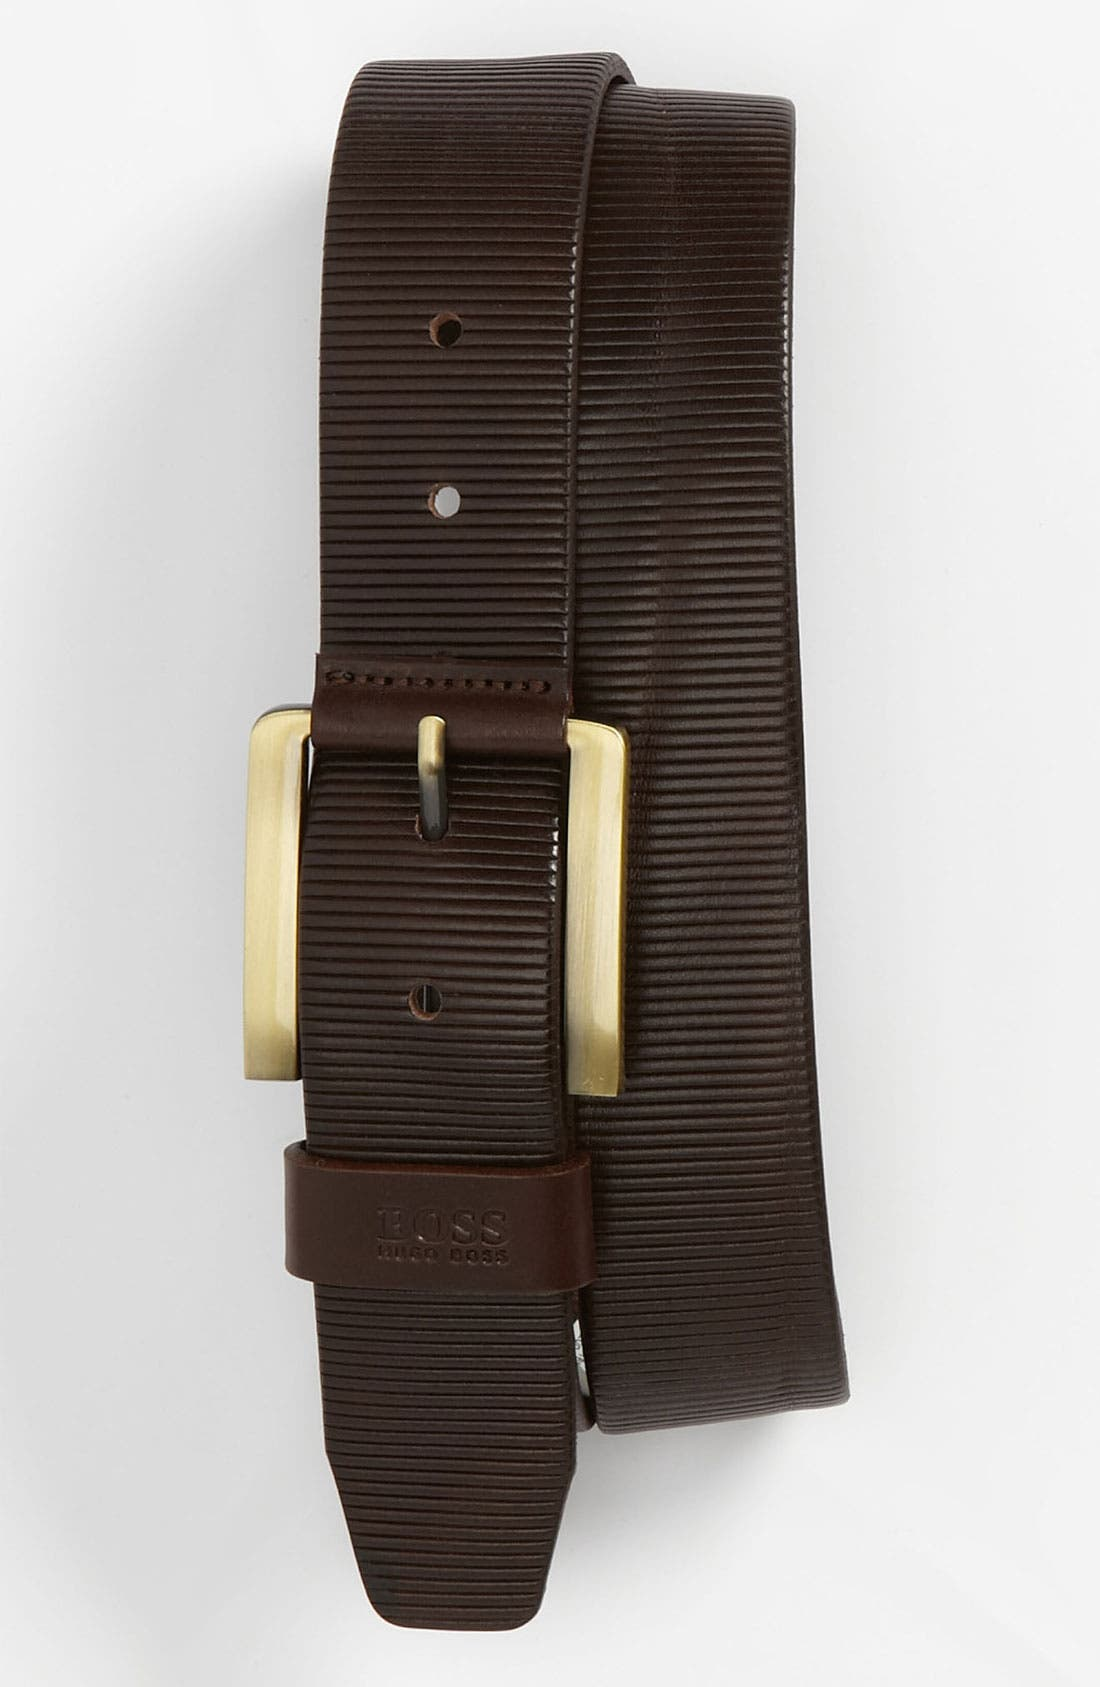 Main Image - BOSS HUGO BOSS 'Sisko' Belt